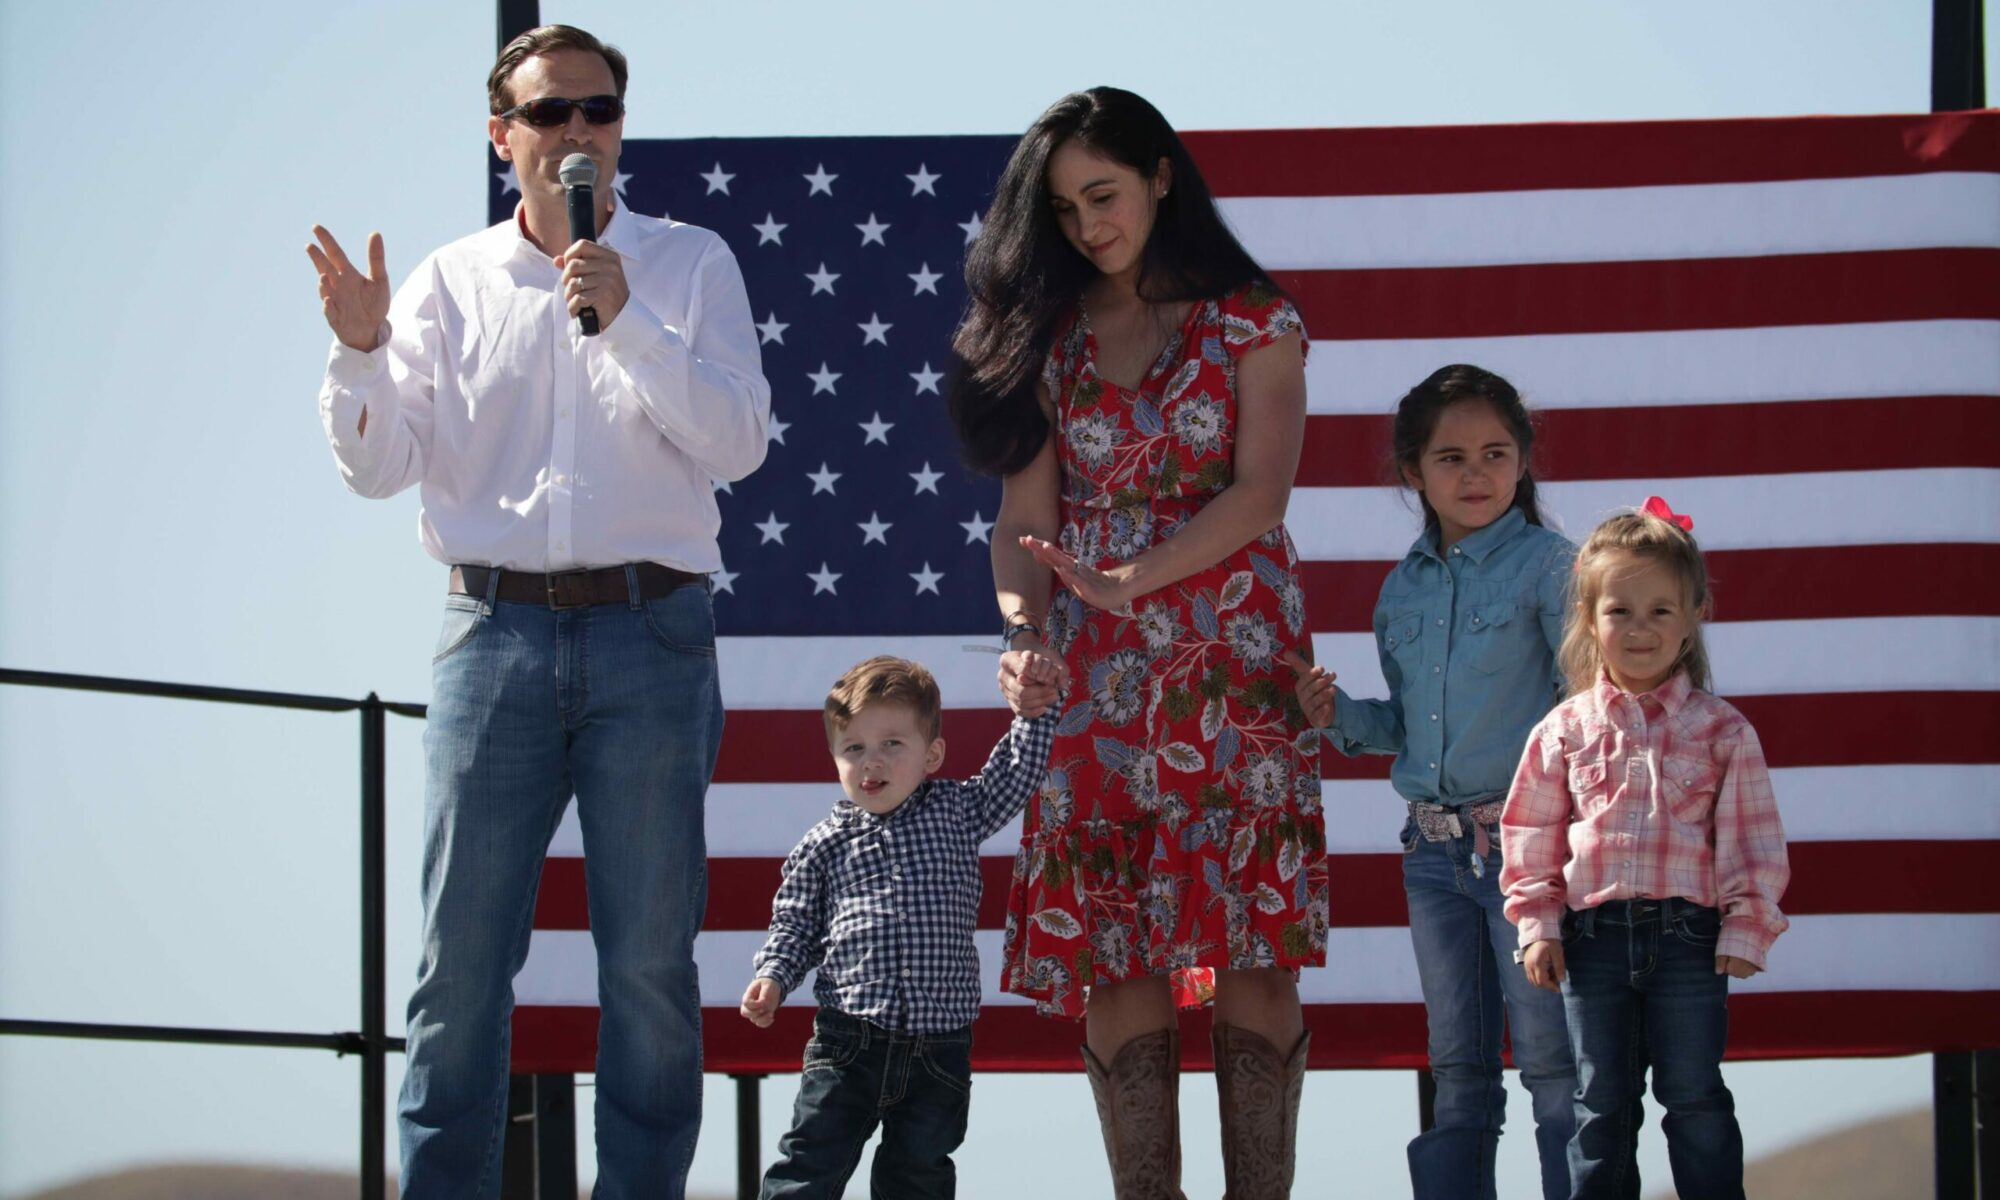 Republican former Attorney General Adam Laxalt and his family